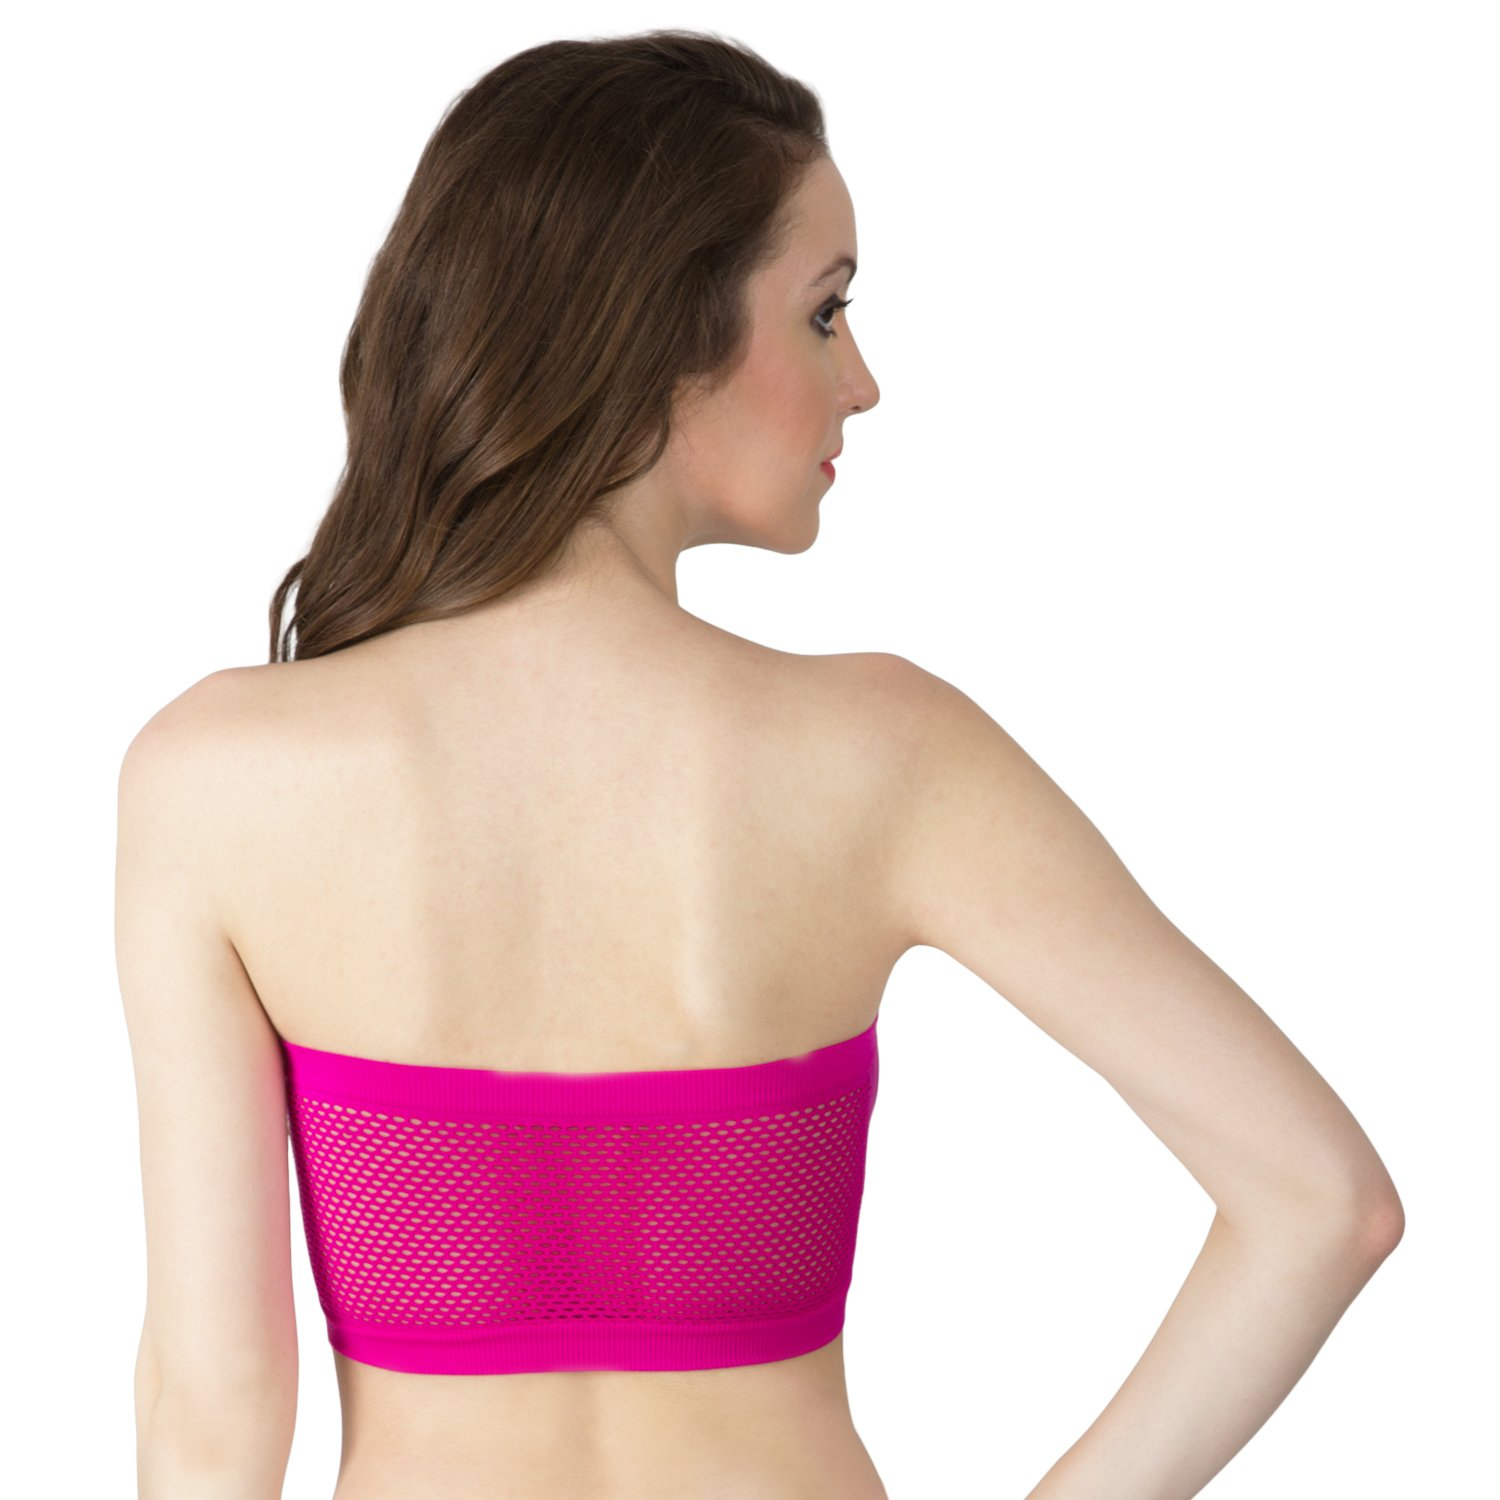 586a6cf0343 SMEXY Women s Magenta Tube Bra Cotton Full Coverage Bra Braa-Htube-Magenta   Amazon.in  Clothing   Accessories